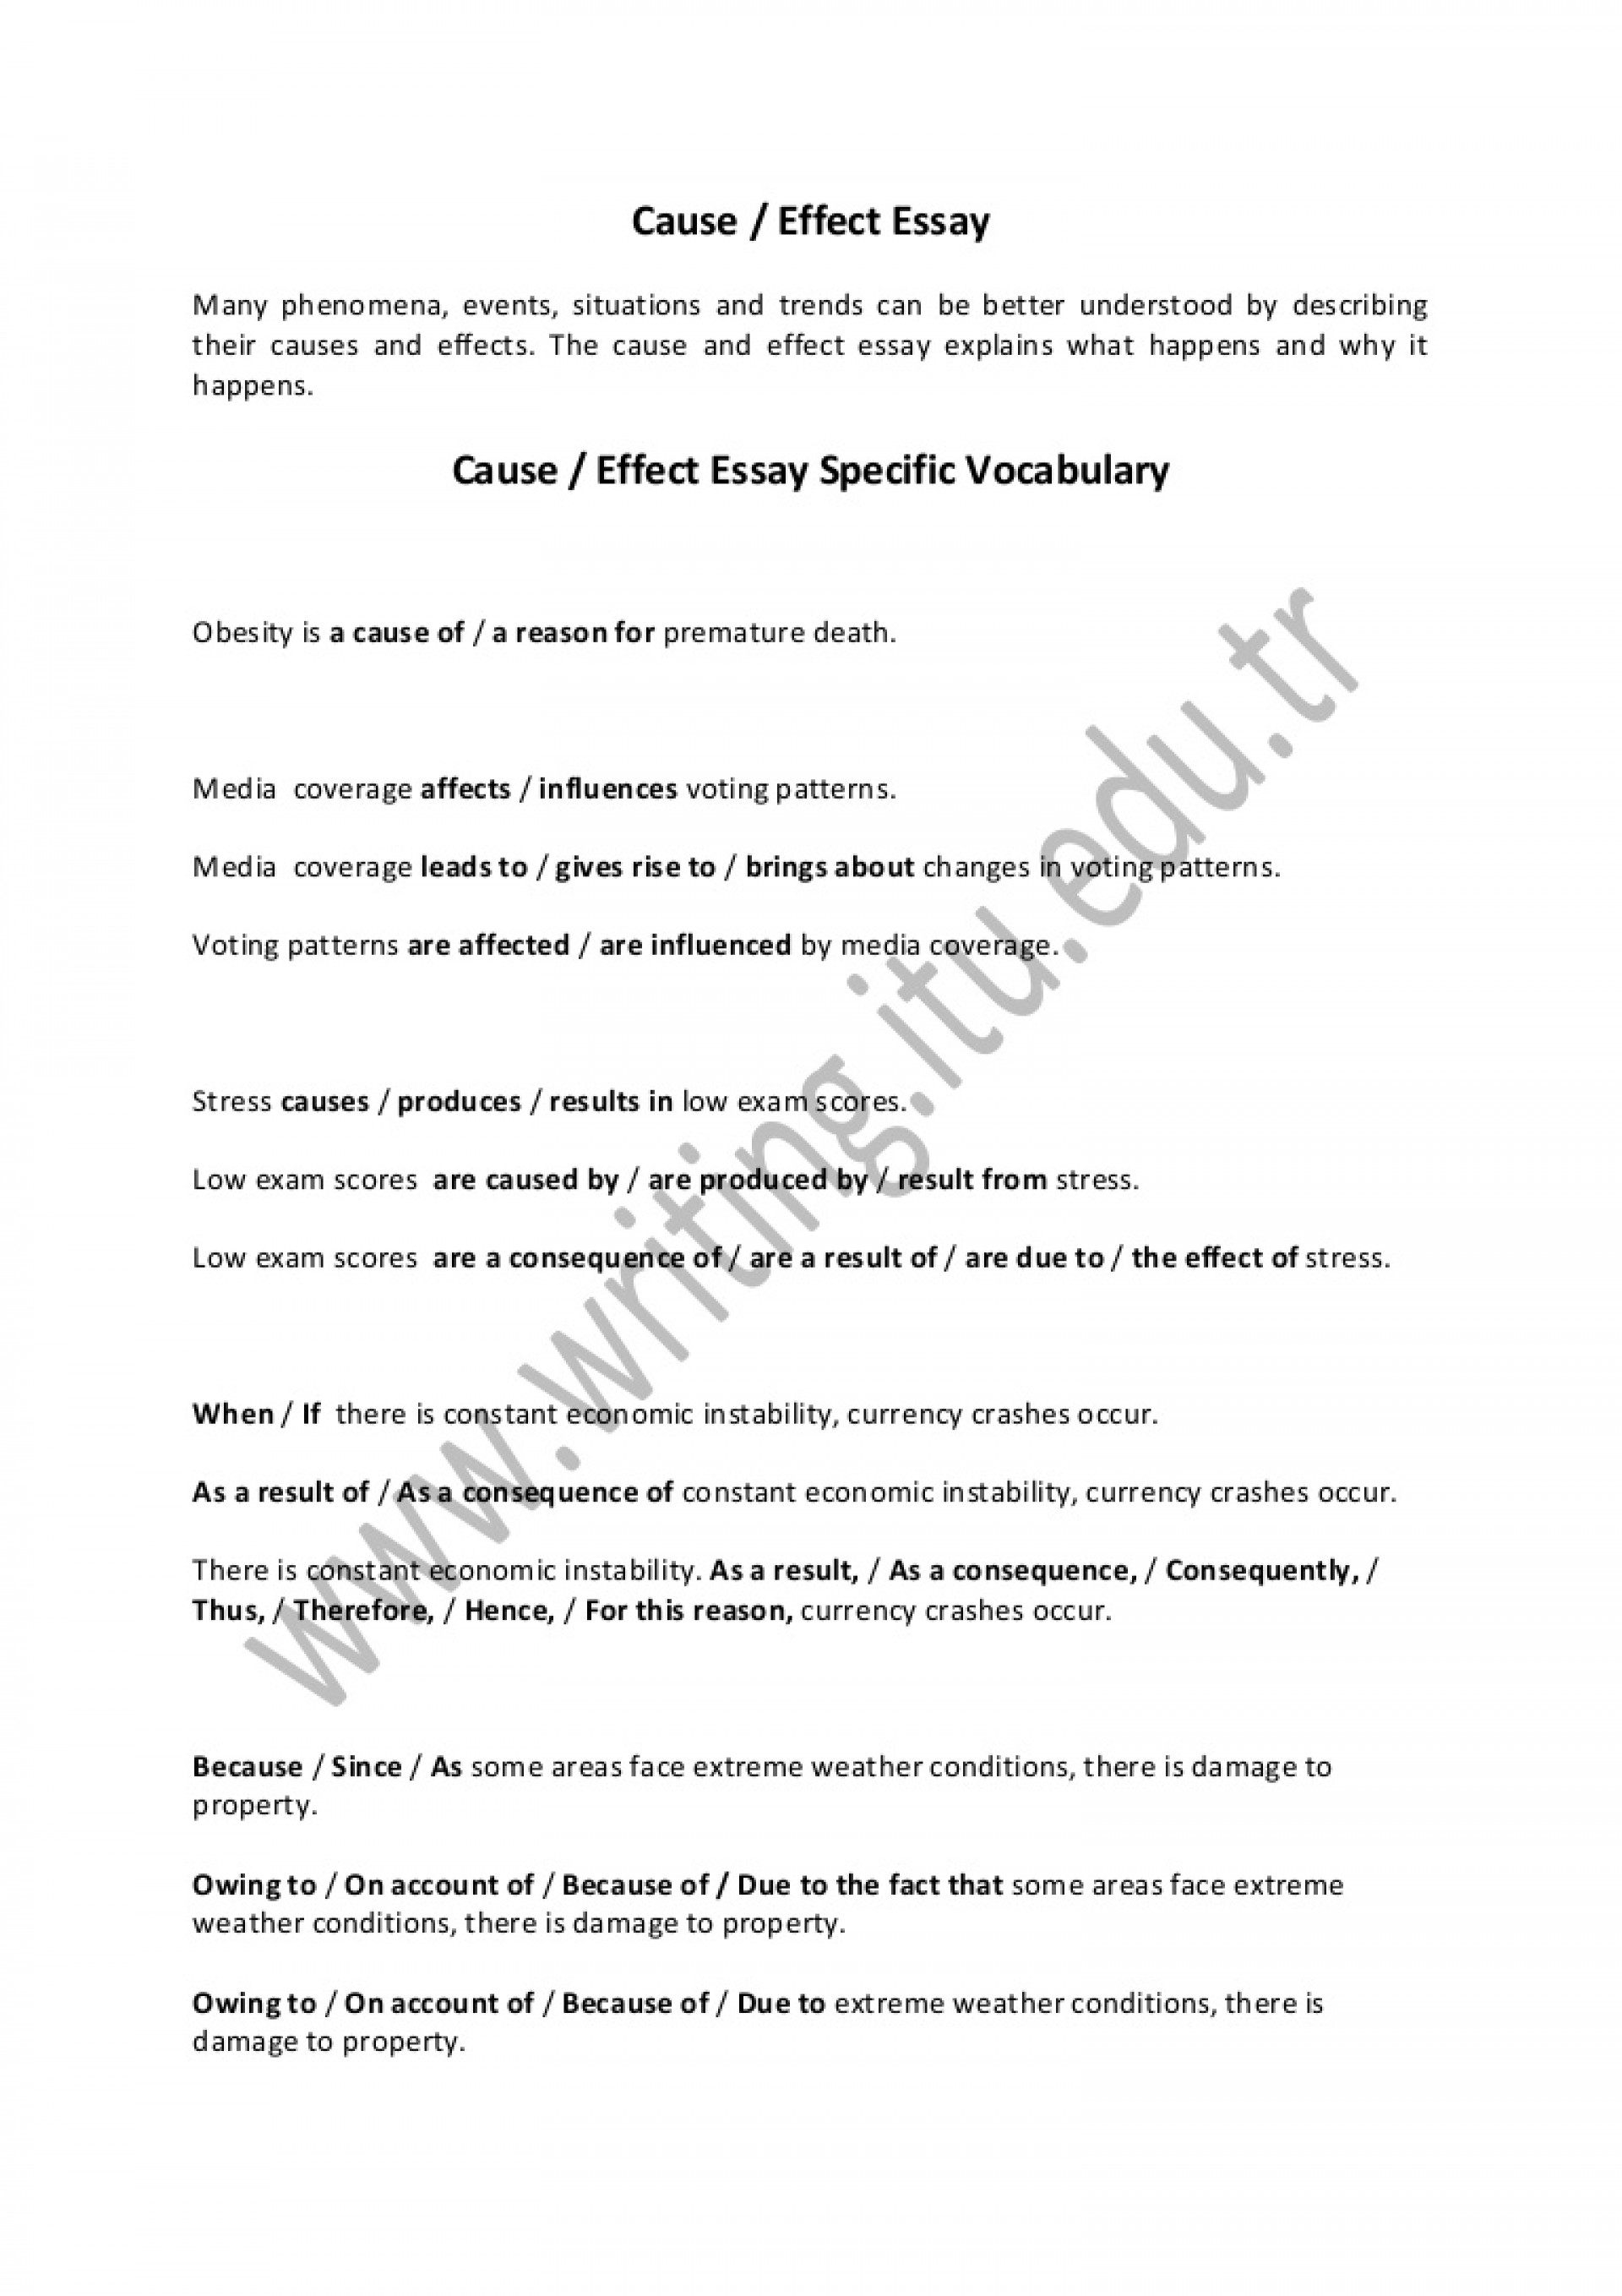 012 Cause And Effect Essay Topics Example Causeandeffectessay Thumbnail Exceptional For College Students High School Basketball 1920